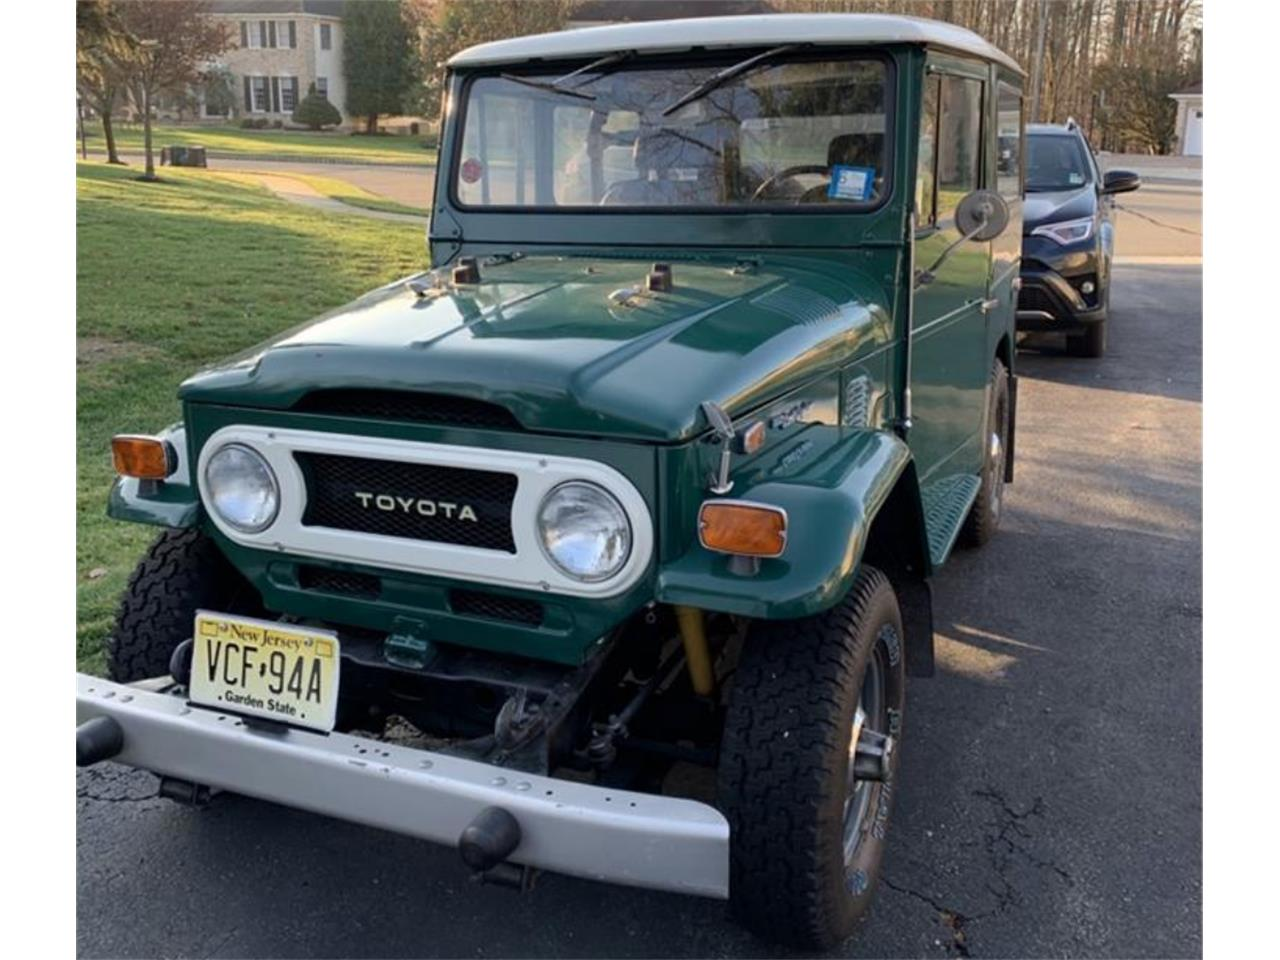 for sale 1974 toyota land cruiser fj in monmouth junction, new jersey cars - monmouth junction, nj at geebo